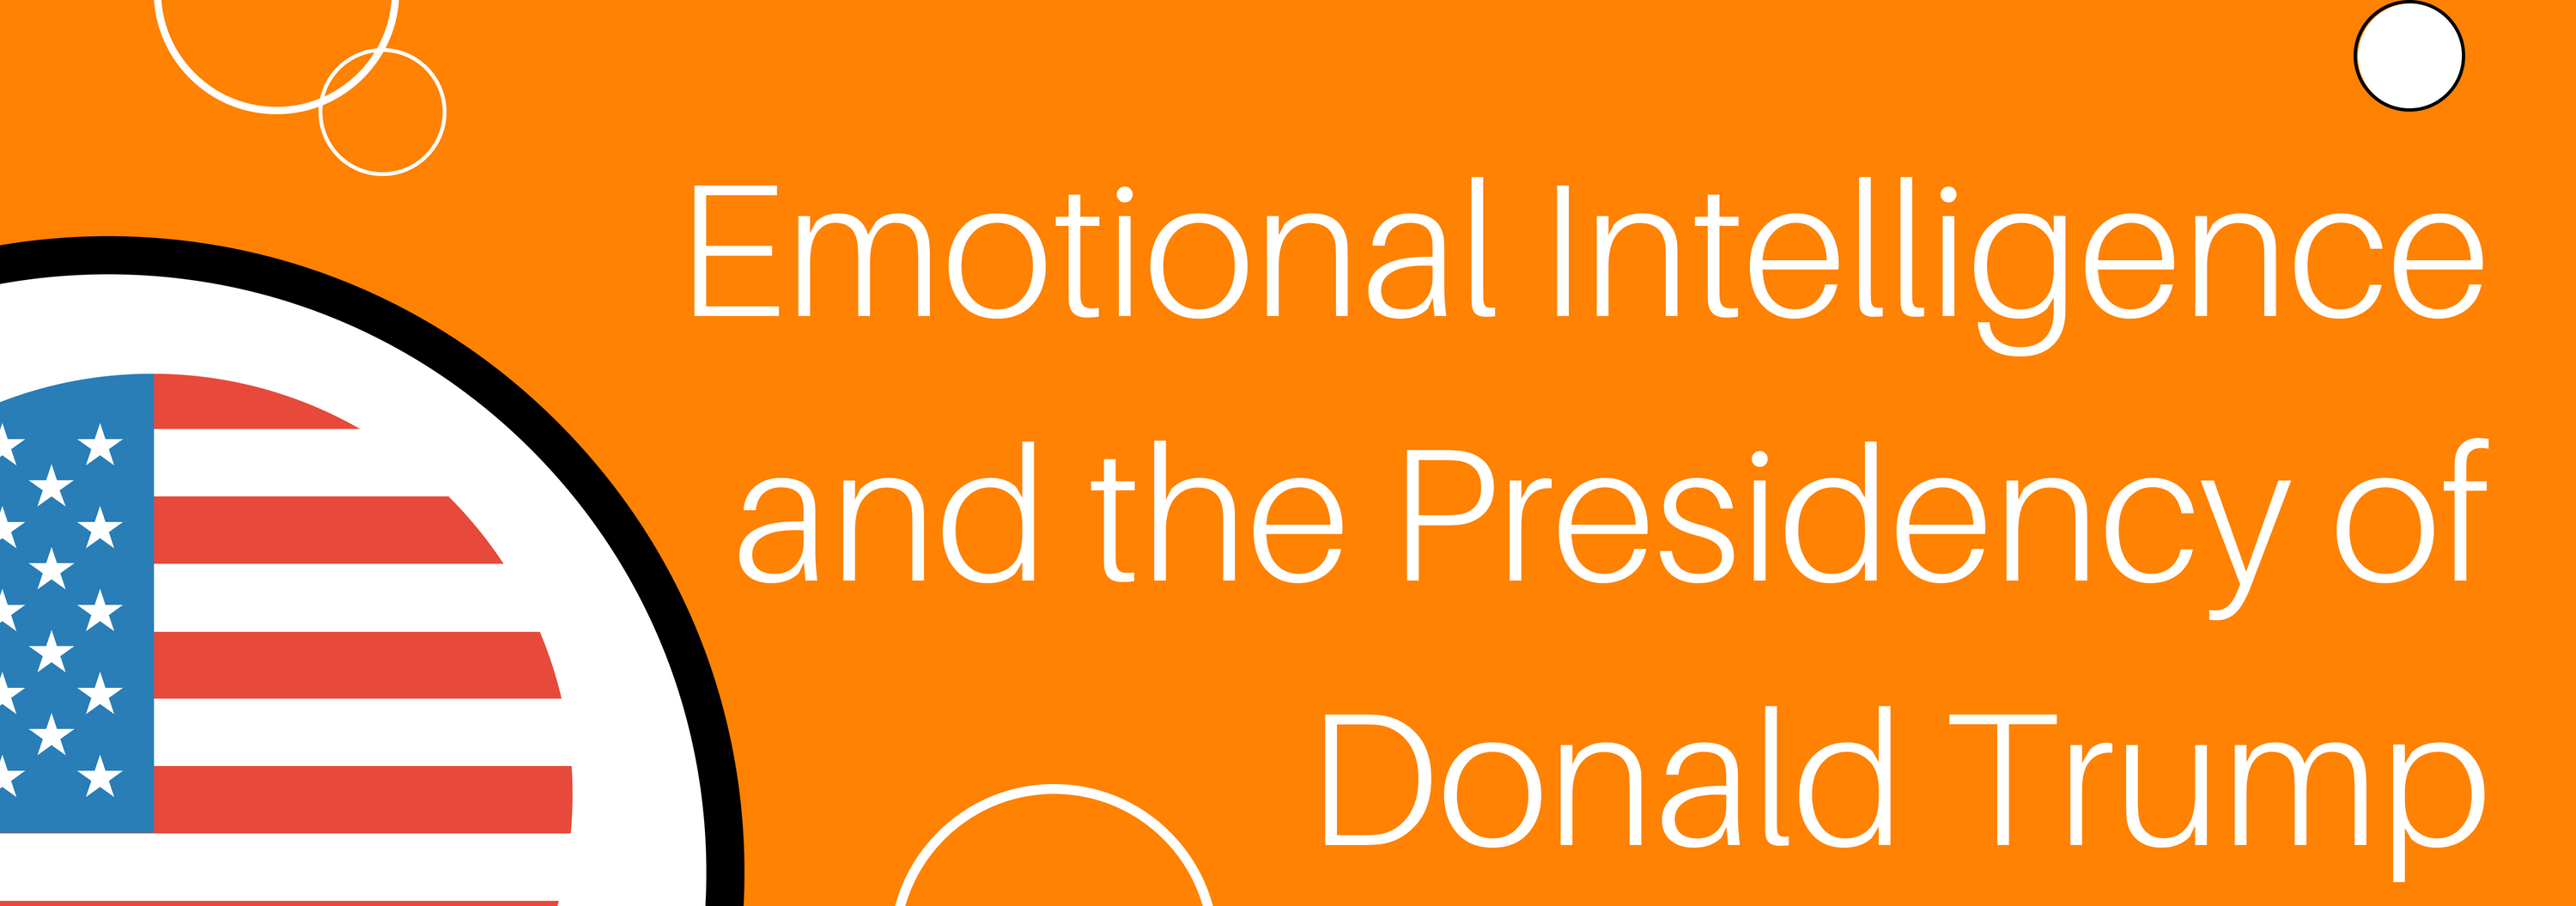 Emotional Intelligence and the Presidency of Donald Trump